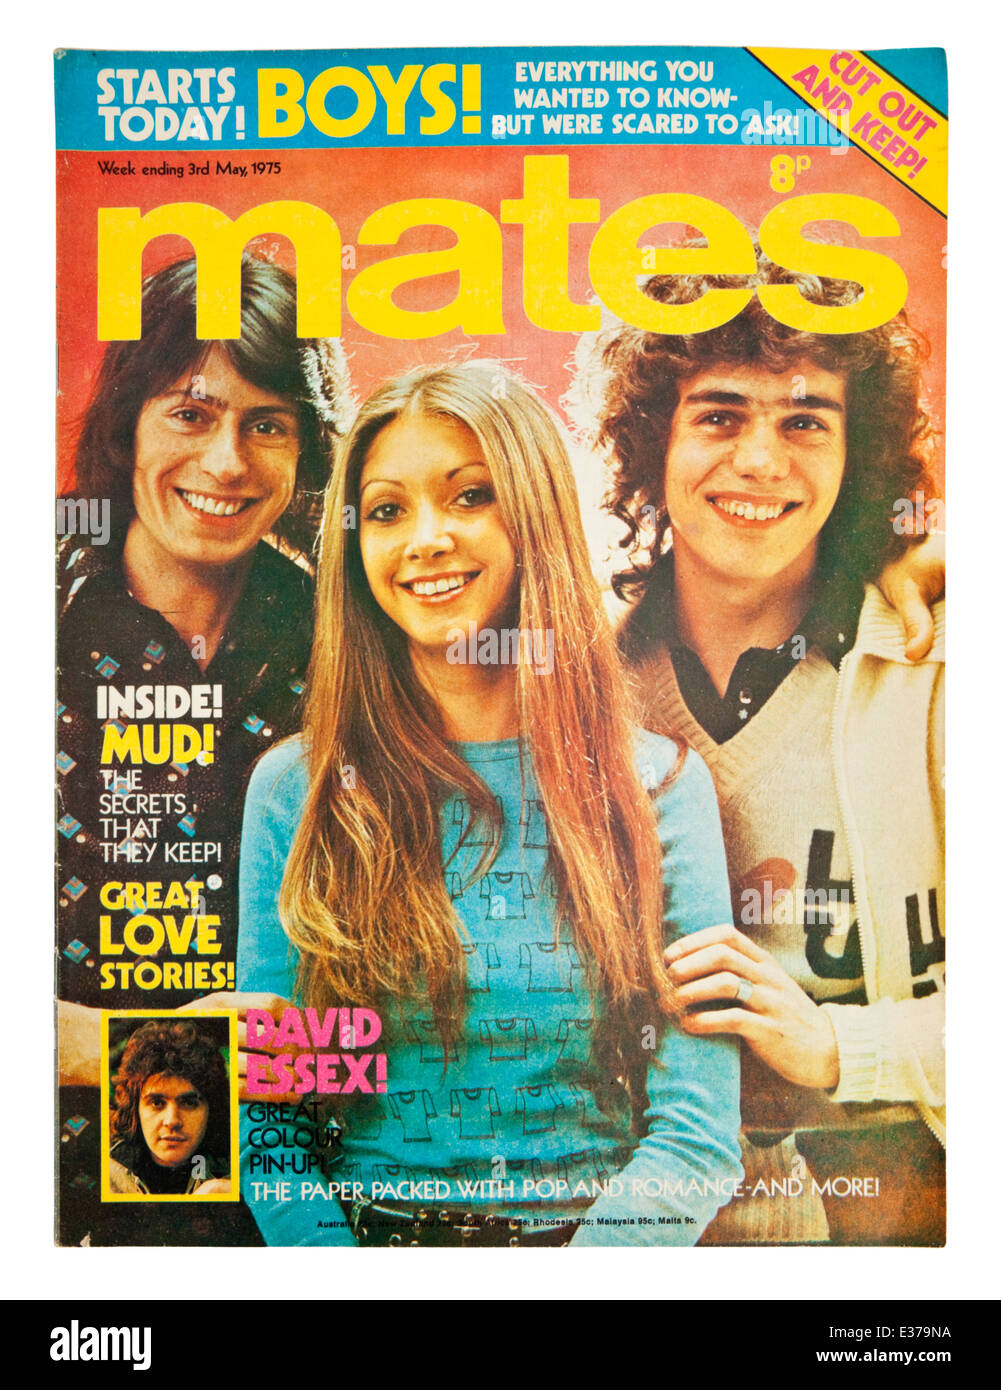 Vintage copy of 'Mates', a popular British weekly teen magazine from the mid 1970's. This is the 3rd - Stock Image